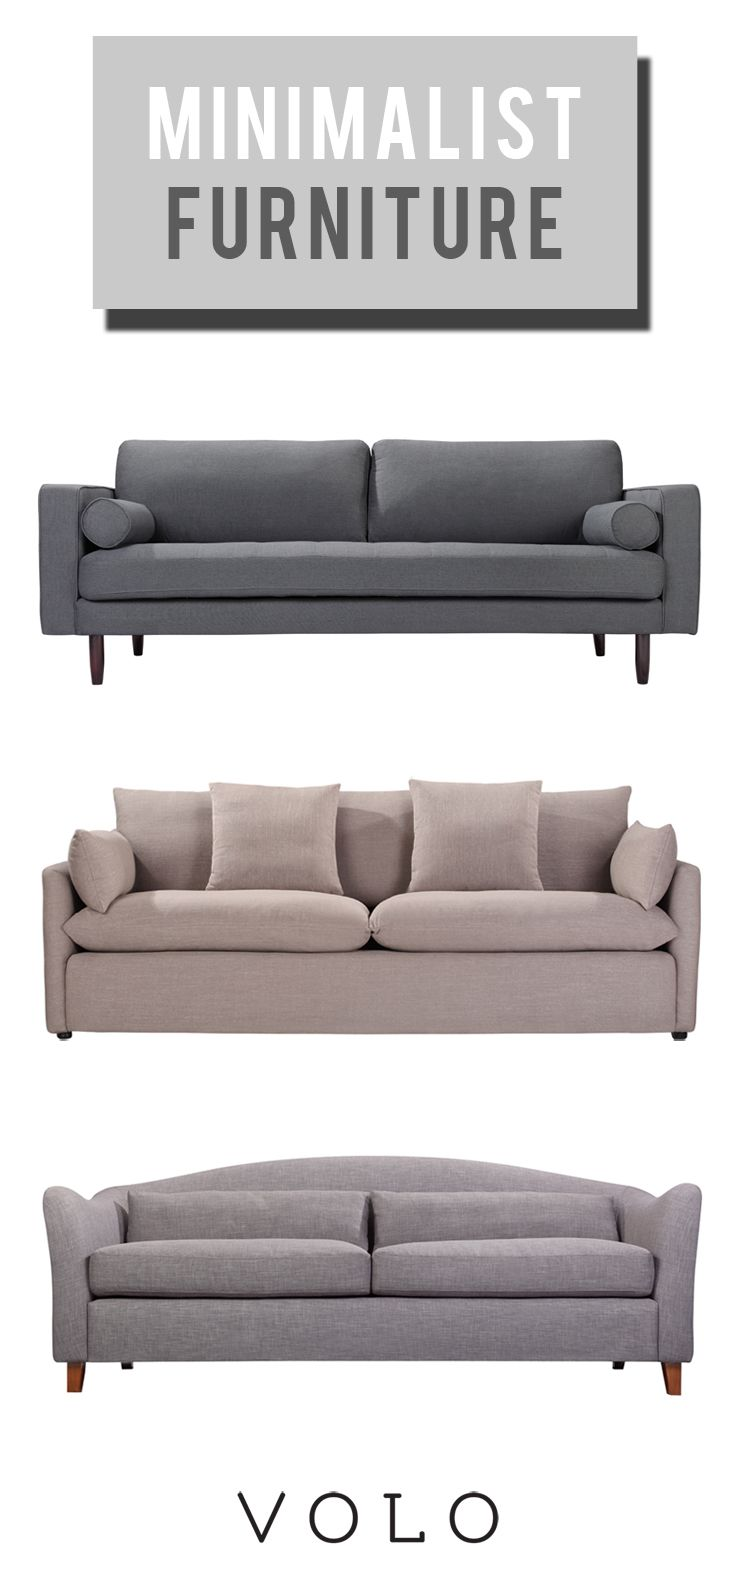 Modern Minimalist Furniture | Up to 70% Off Retail at capsulehome.com